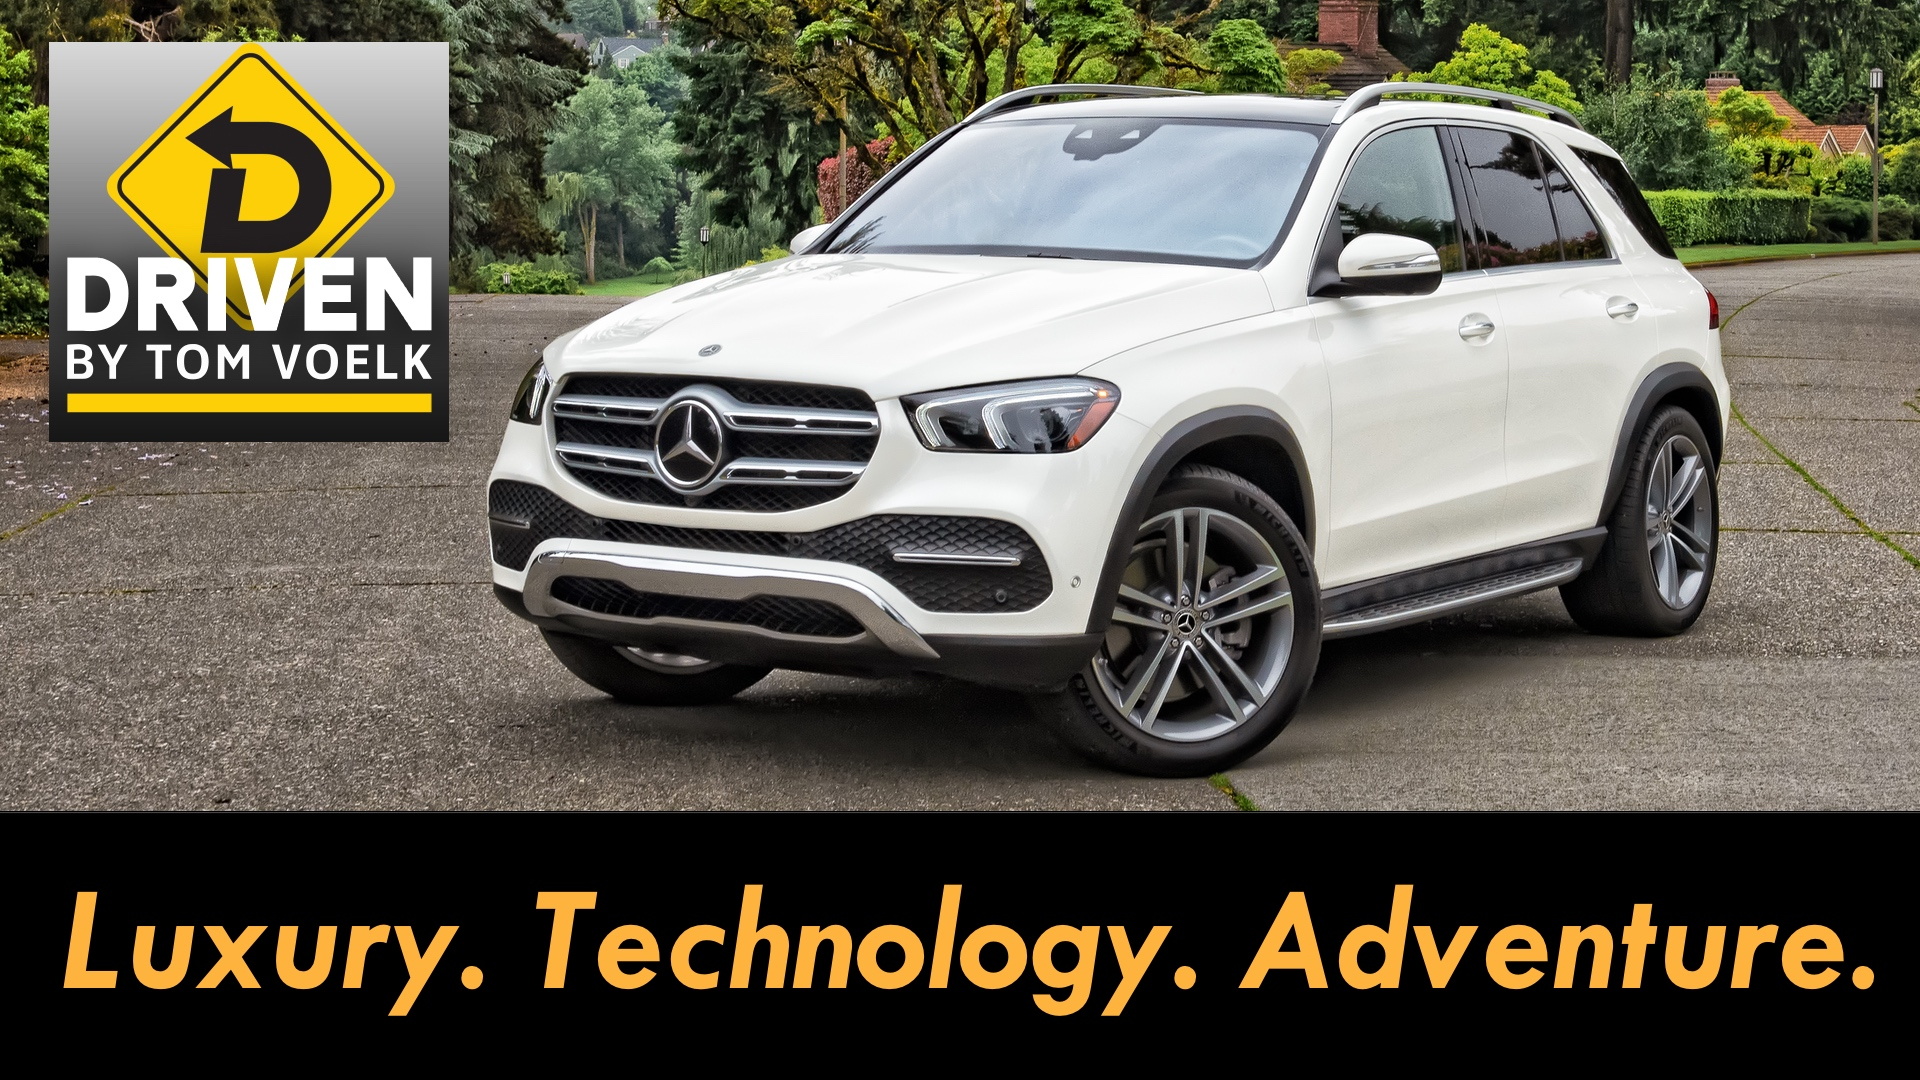 Artwork for 2020 Mercedes-Benz GLE450 4MATIC